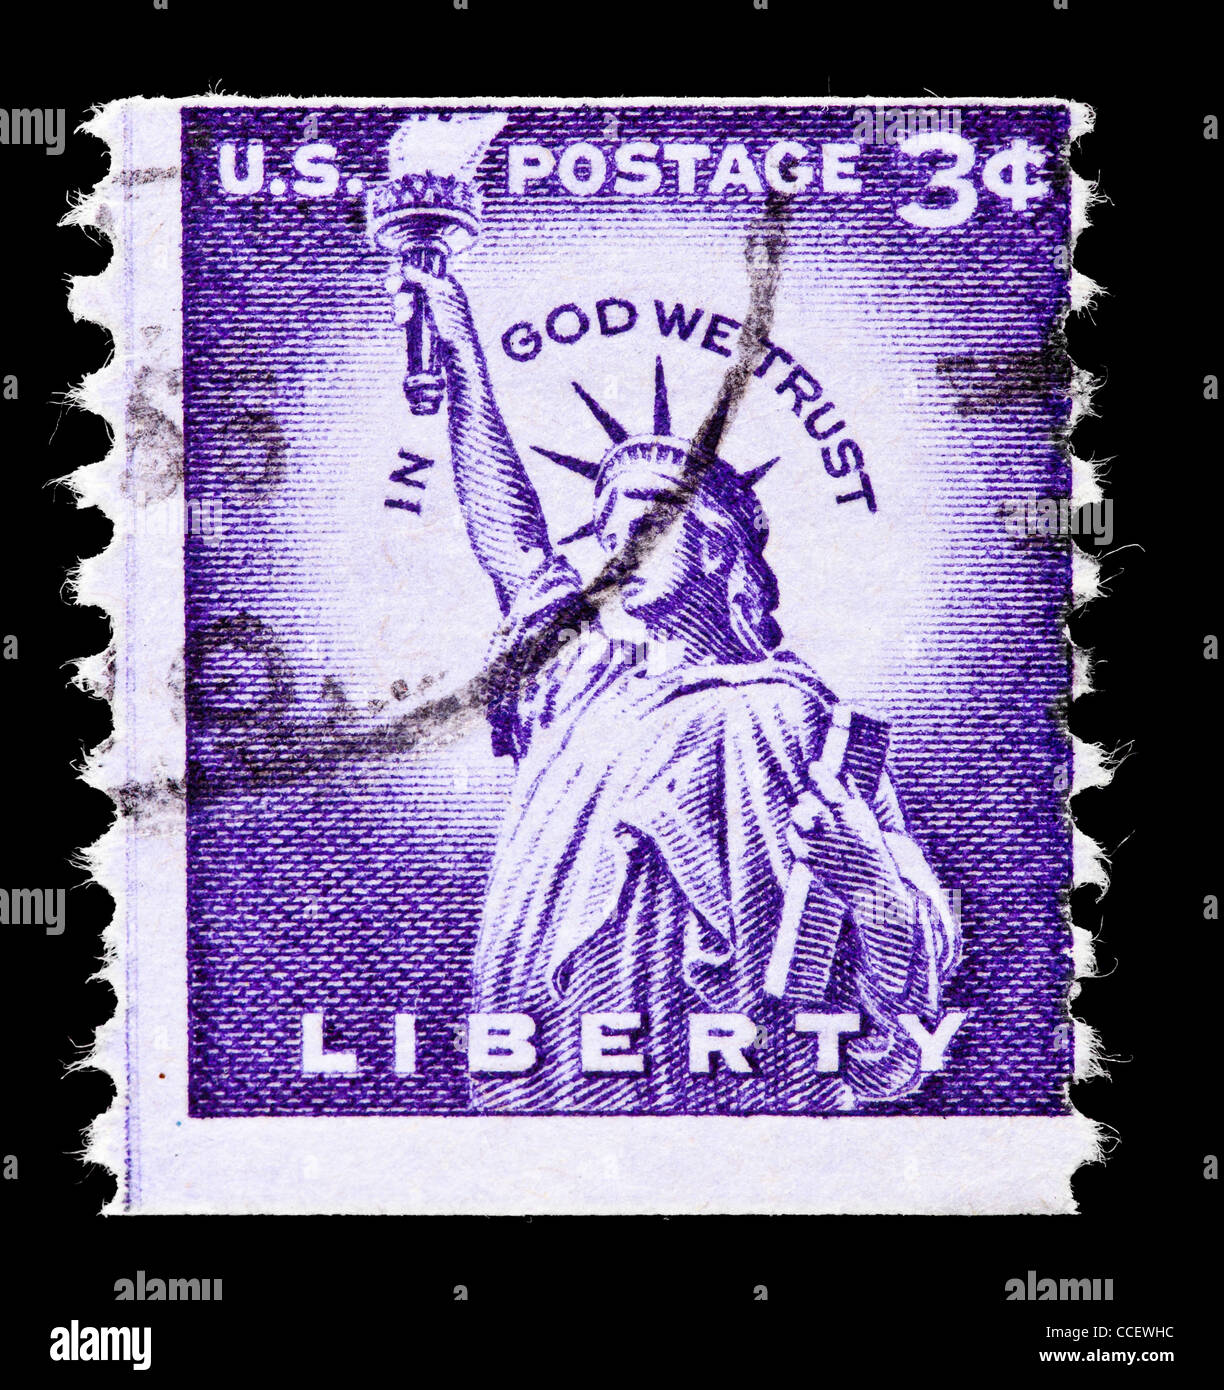 Postage Stamp United States Statue Of Liberty 3 Cent 1954 Stamped Perforated Vertically